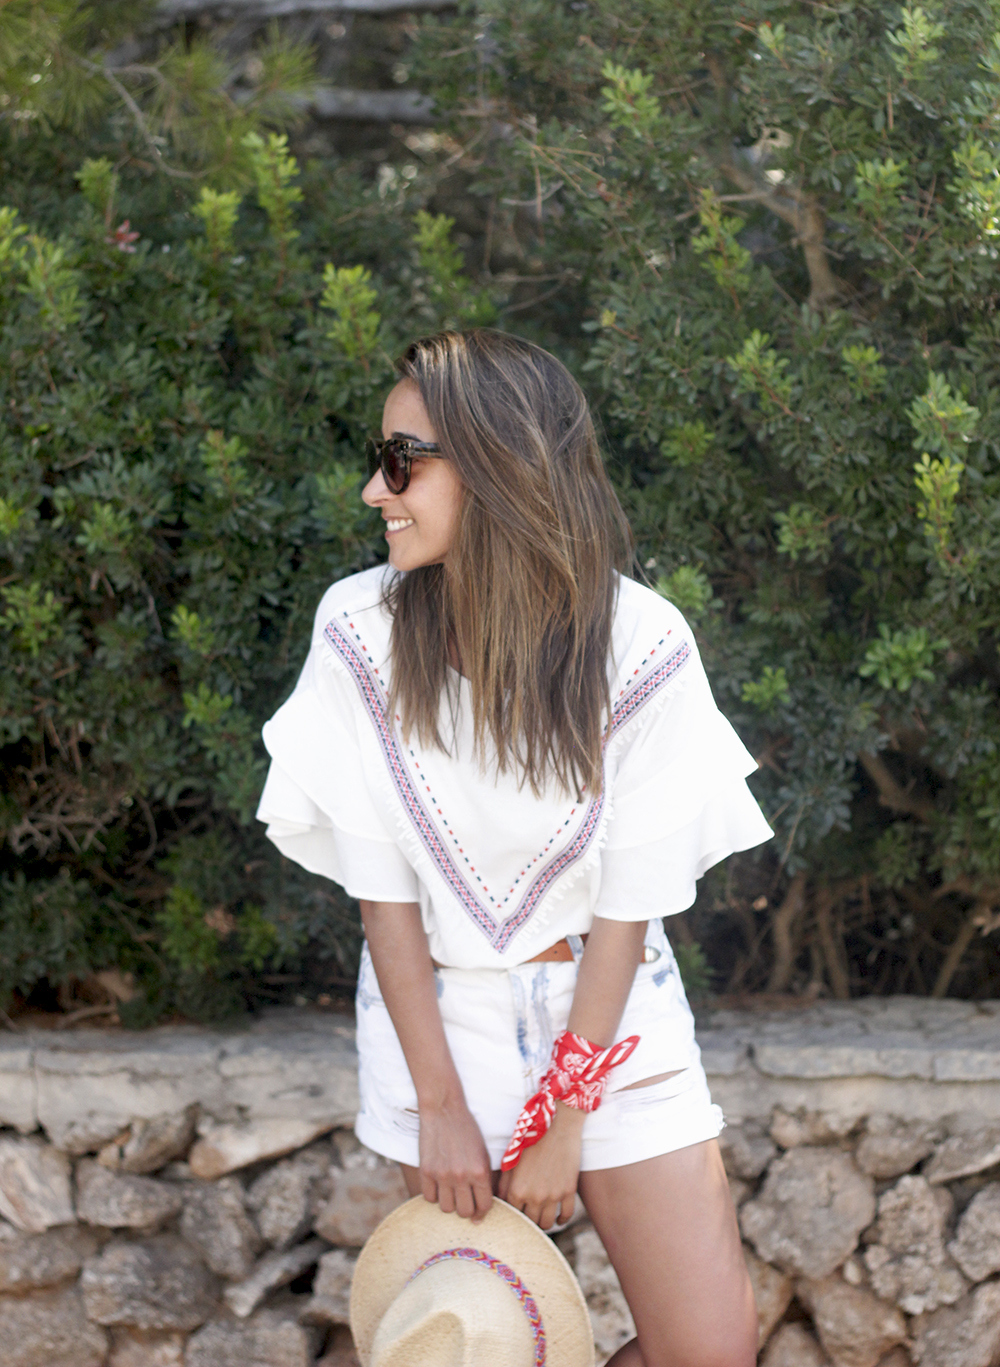 White Summer look bandana beach outfit19